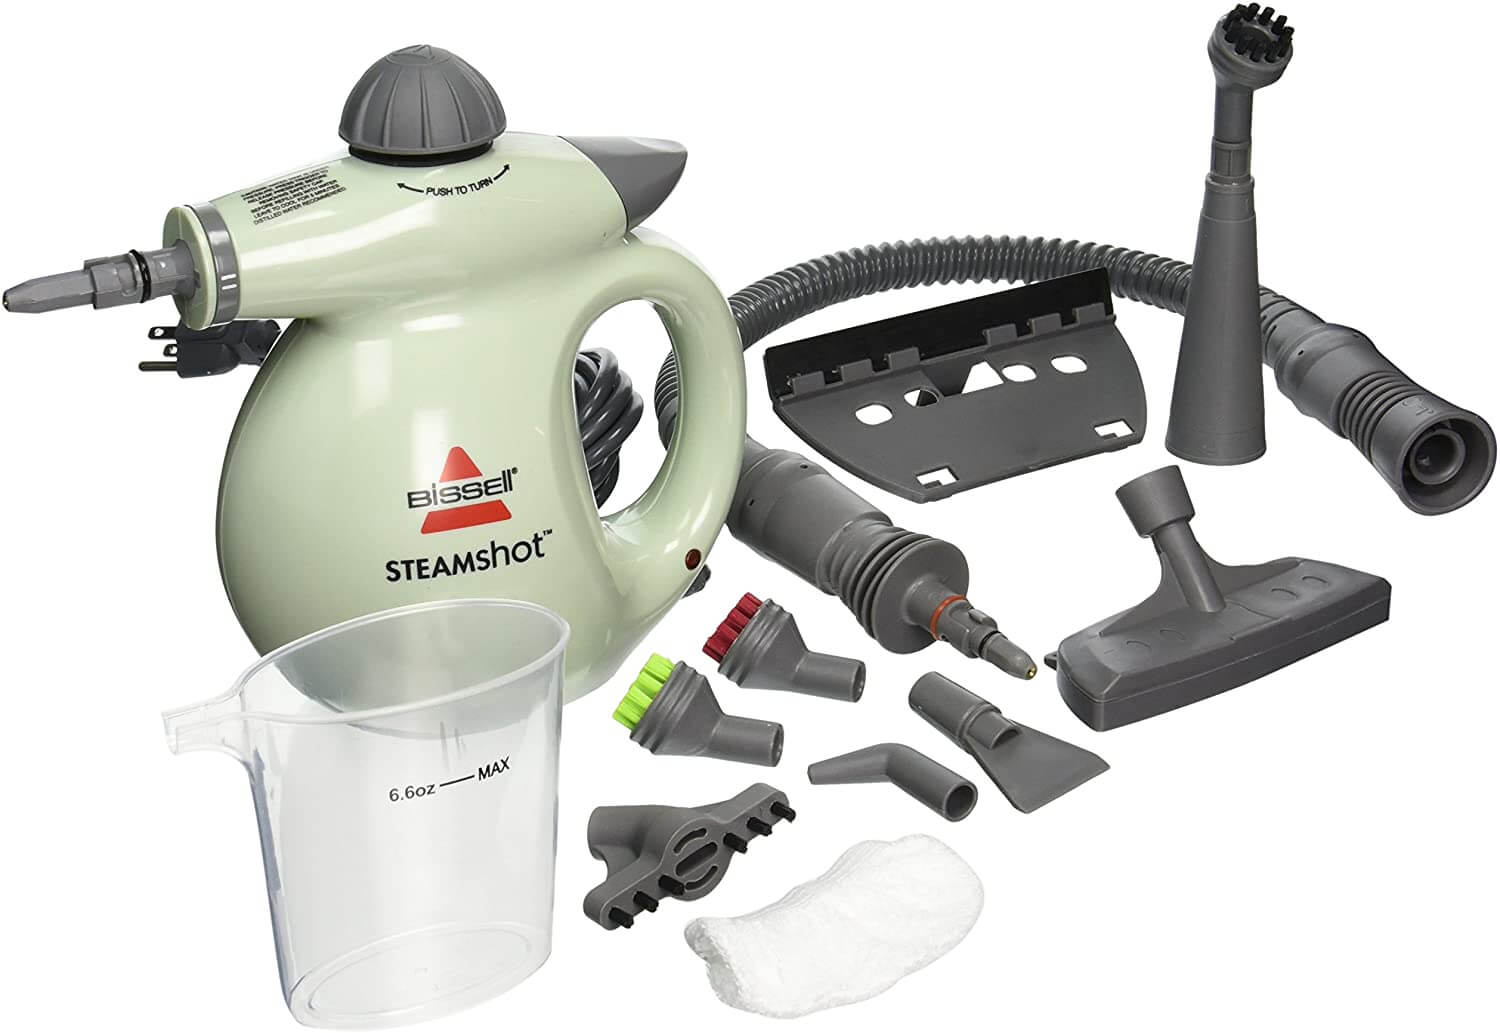 BISSELL 39N7A 39N71 Steam Shot Deluxe Hard-Surface Cleaner accessories